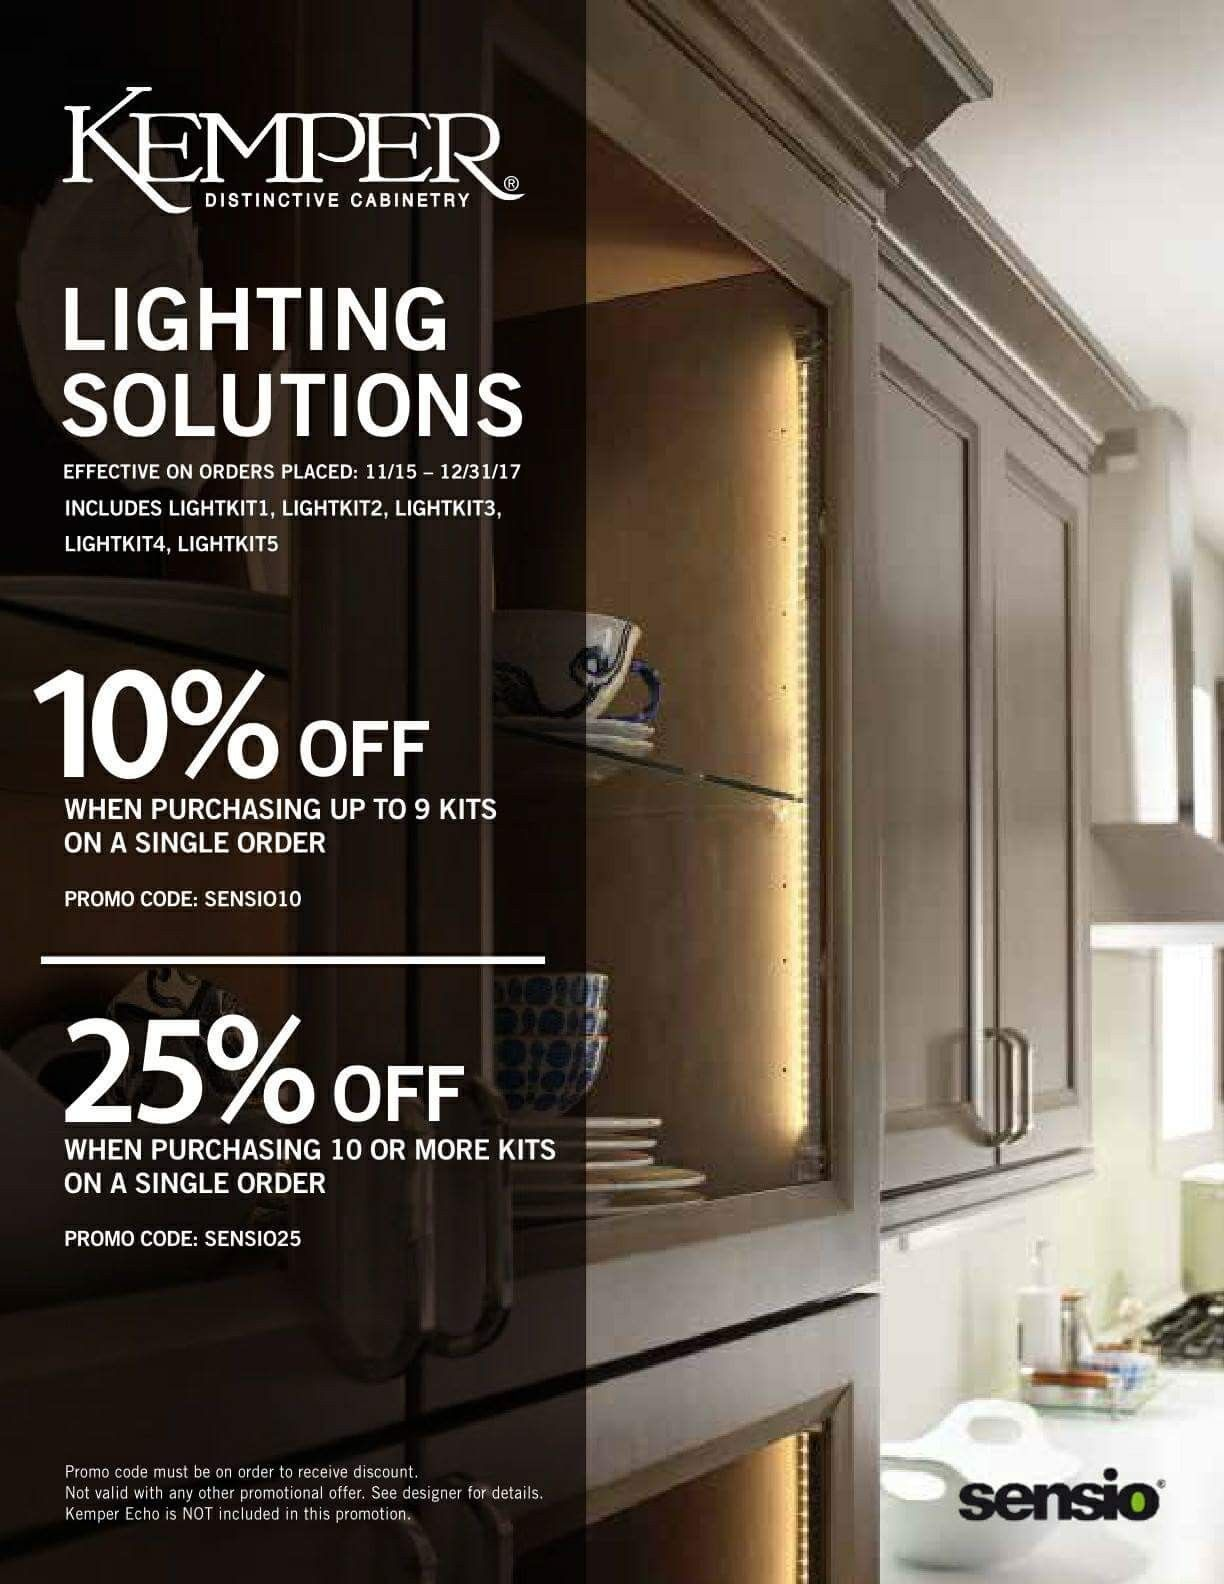 Kemper Sensio Lighting Promotion Want To Add Lighting Order Now And Save Kemper Cabinetry And Sensio Are Excited To Partne Kitchen Sale Kitchen Cabinetry